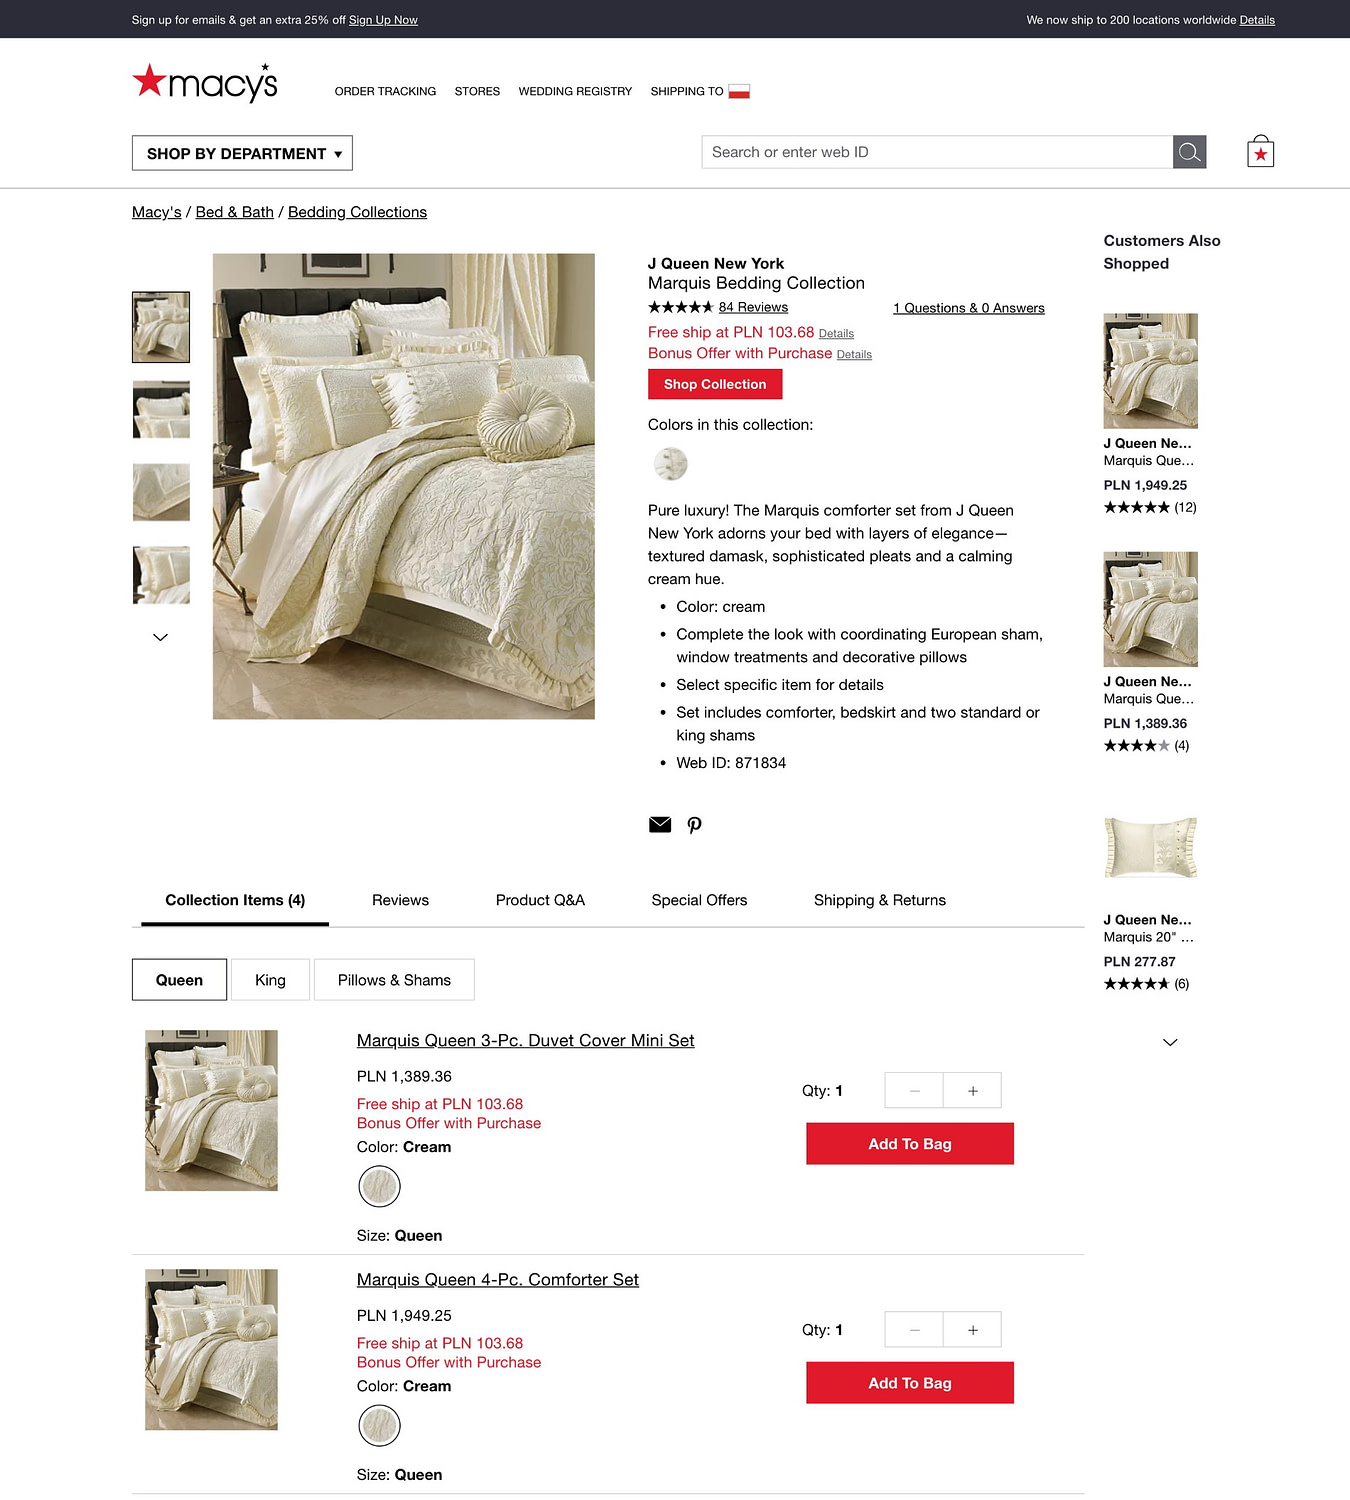 macys product page